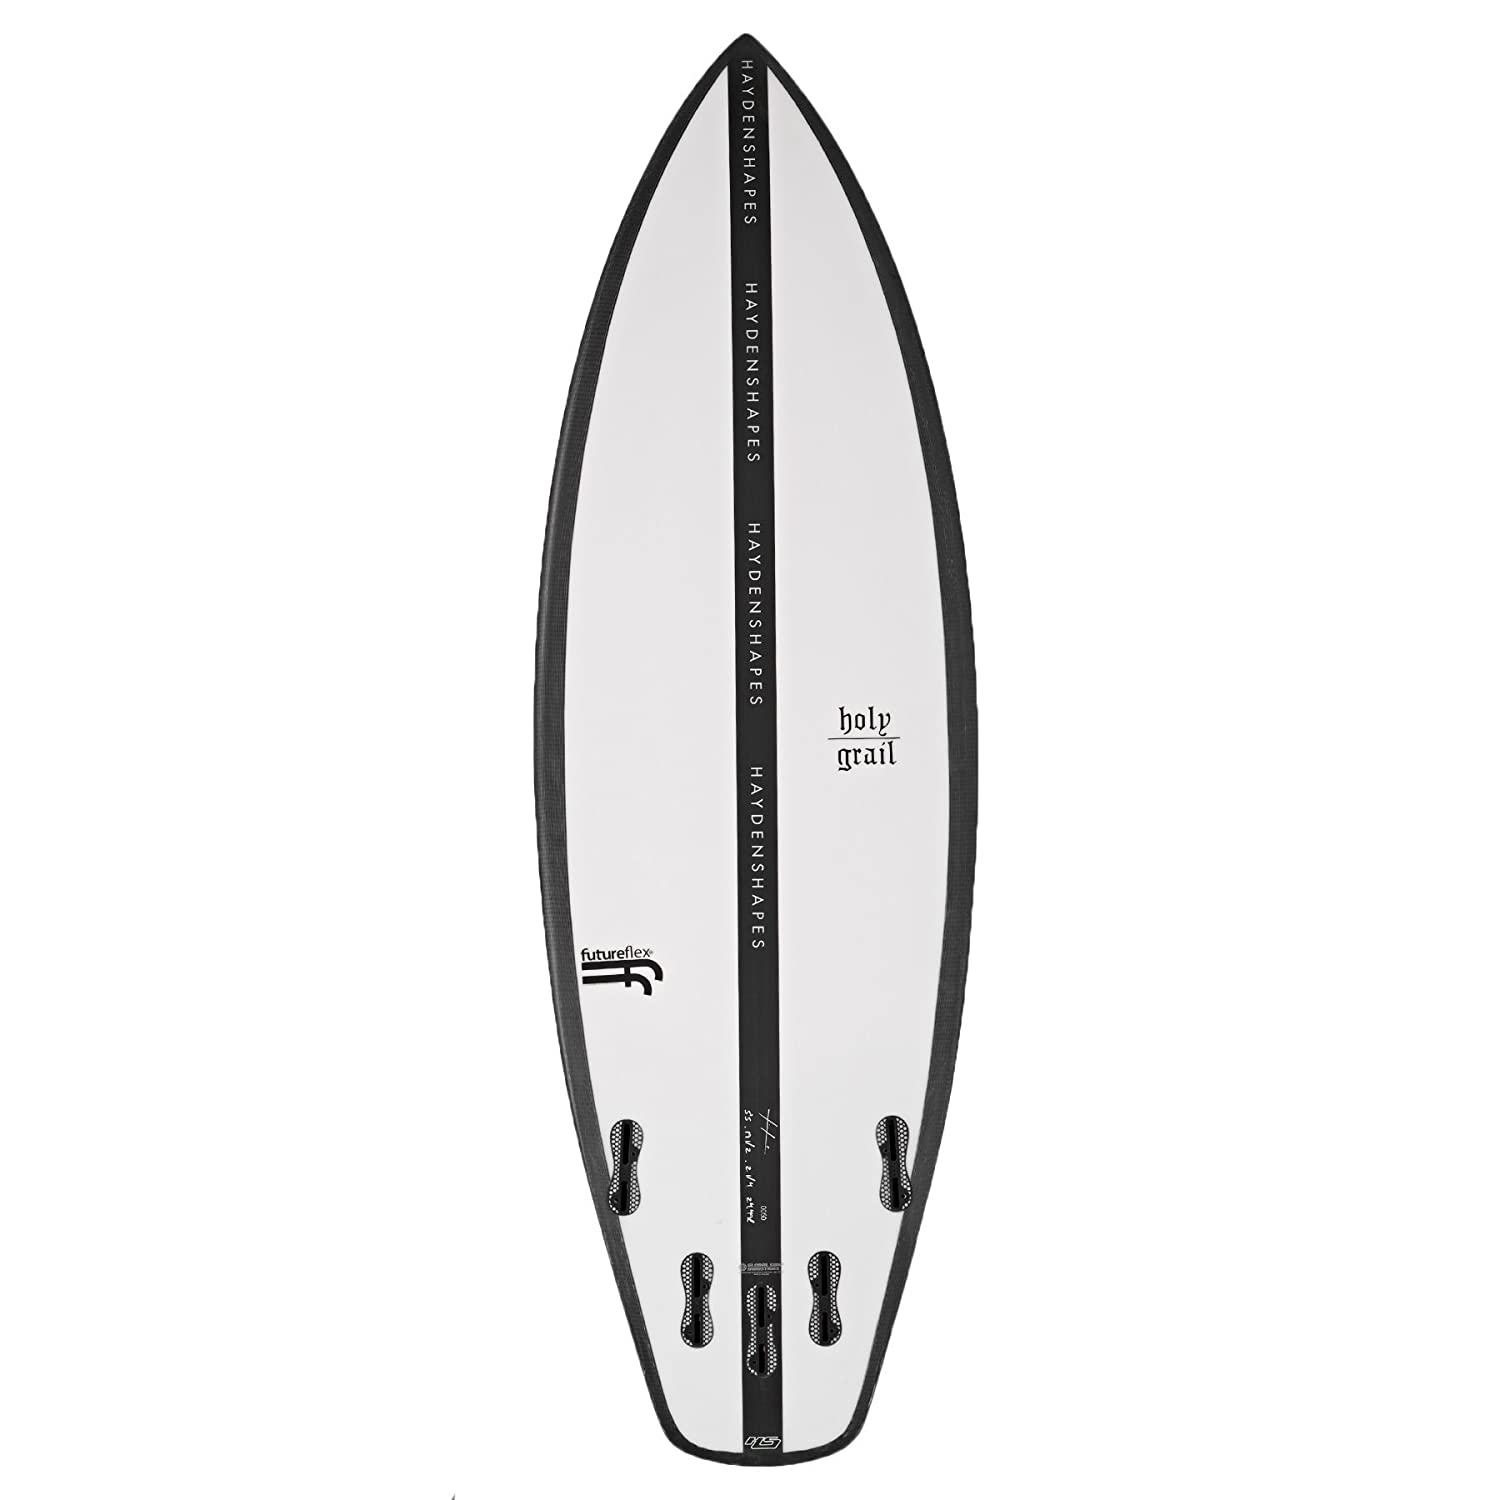 Hayden Shapes Holy Grail Future Flex FCS II - Tabla de Surf (1,5 m), Transparente: Amazon.es: Deportes y aire libre